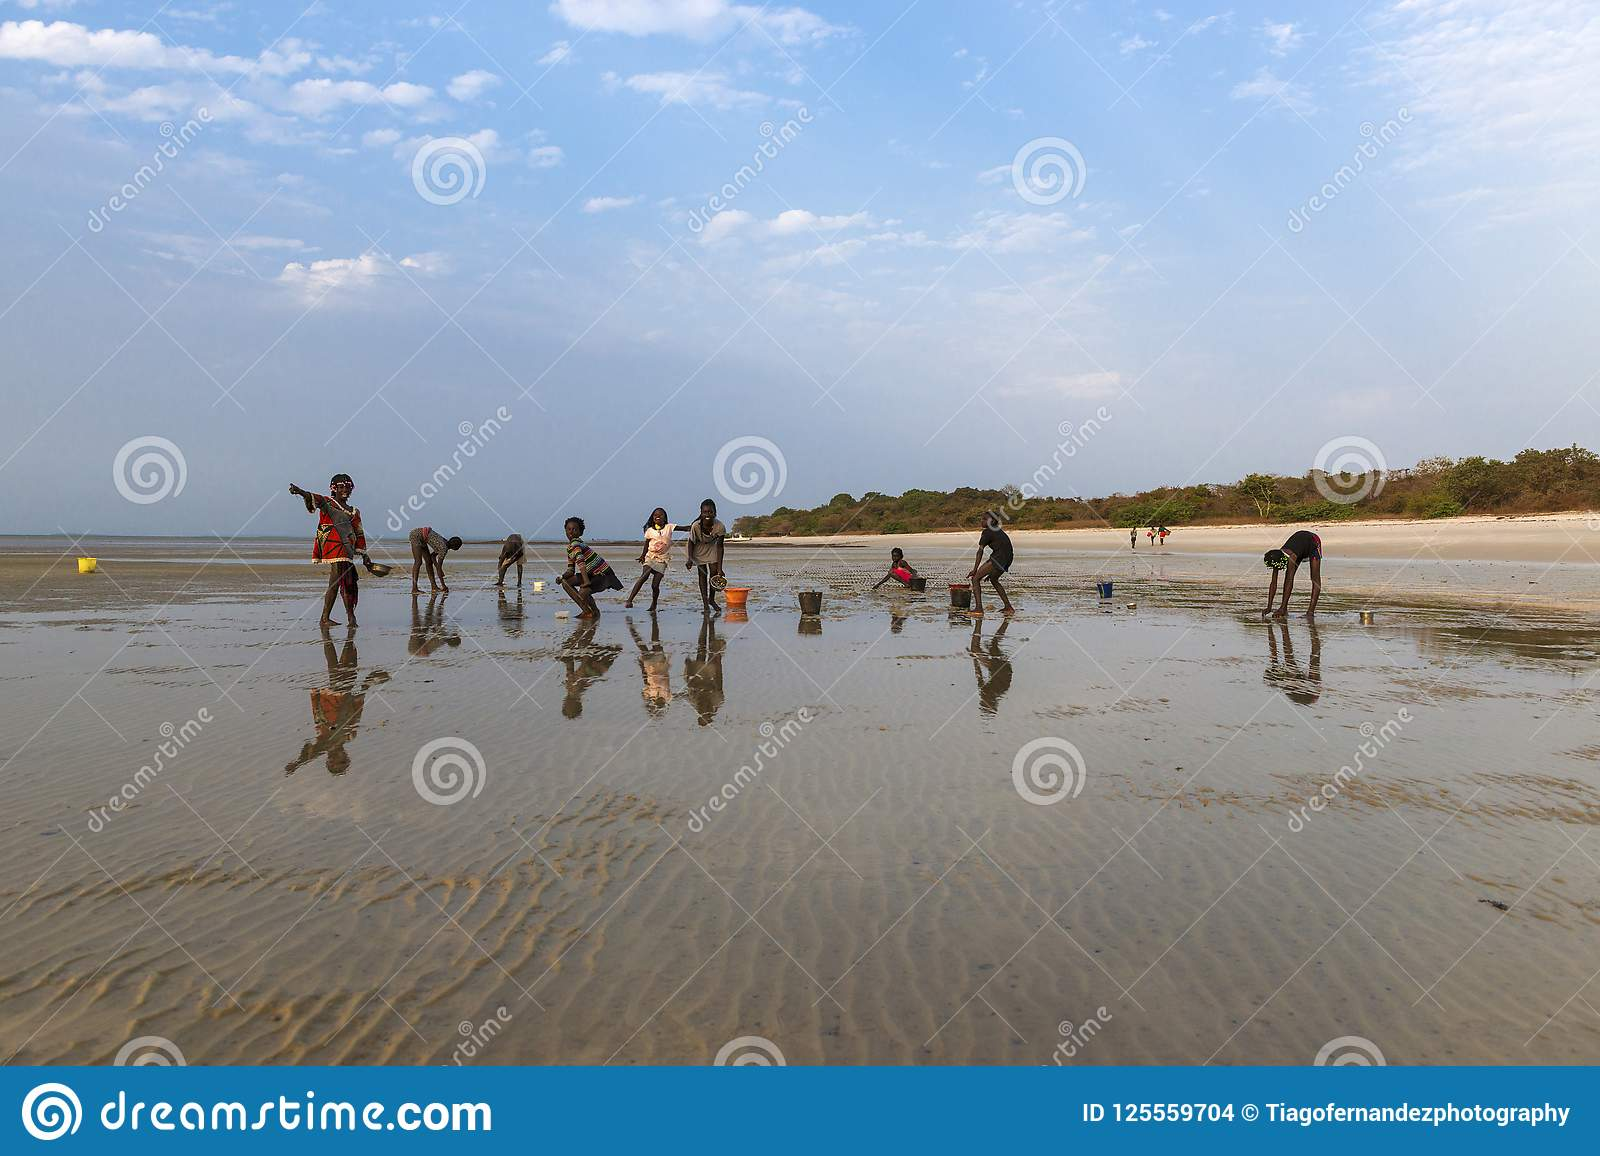 Group of children collecting cockles and playing at the beach in the island of Orango at sunset.